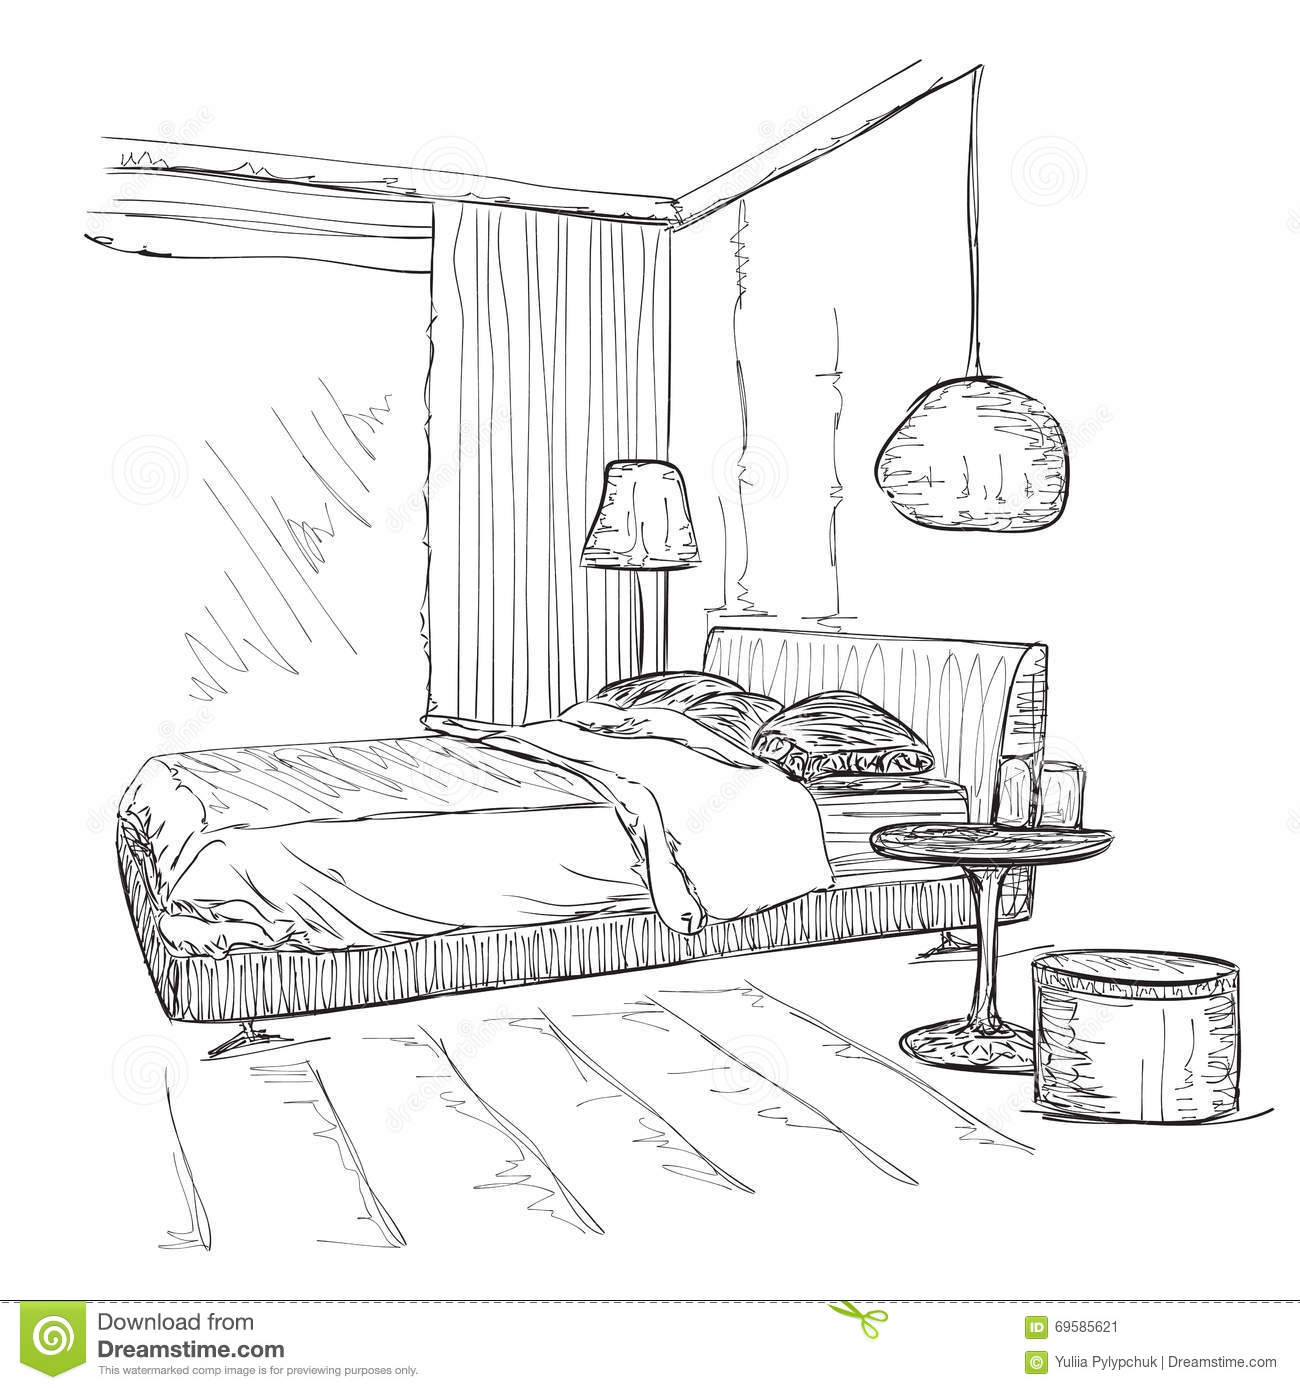 croquis int rieur moderne de dessin de vecteur de chambre coucher illustration de vecteur. Black Bedroom Furniture Sets. Home Design Ideas